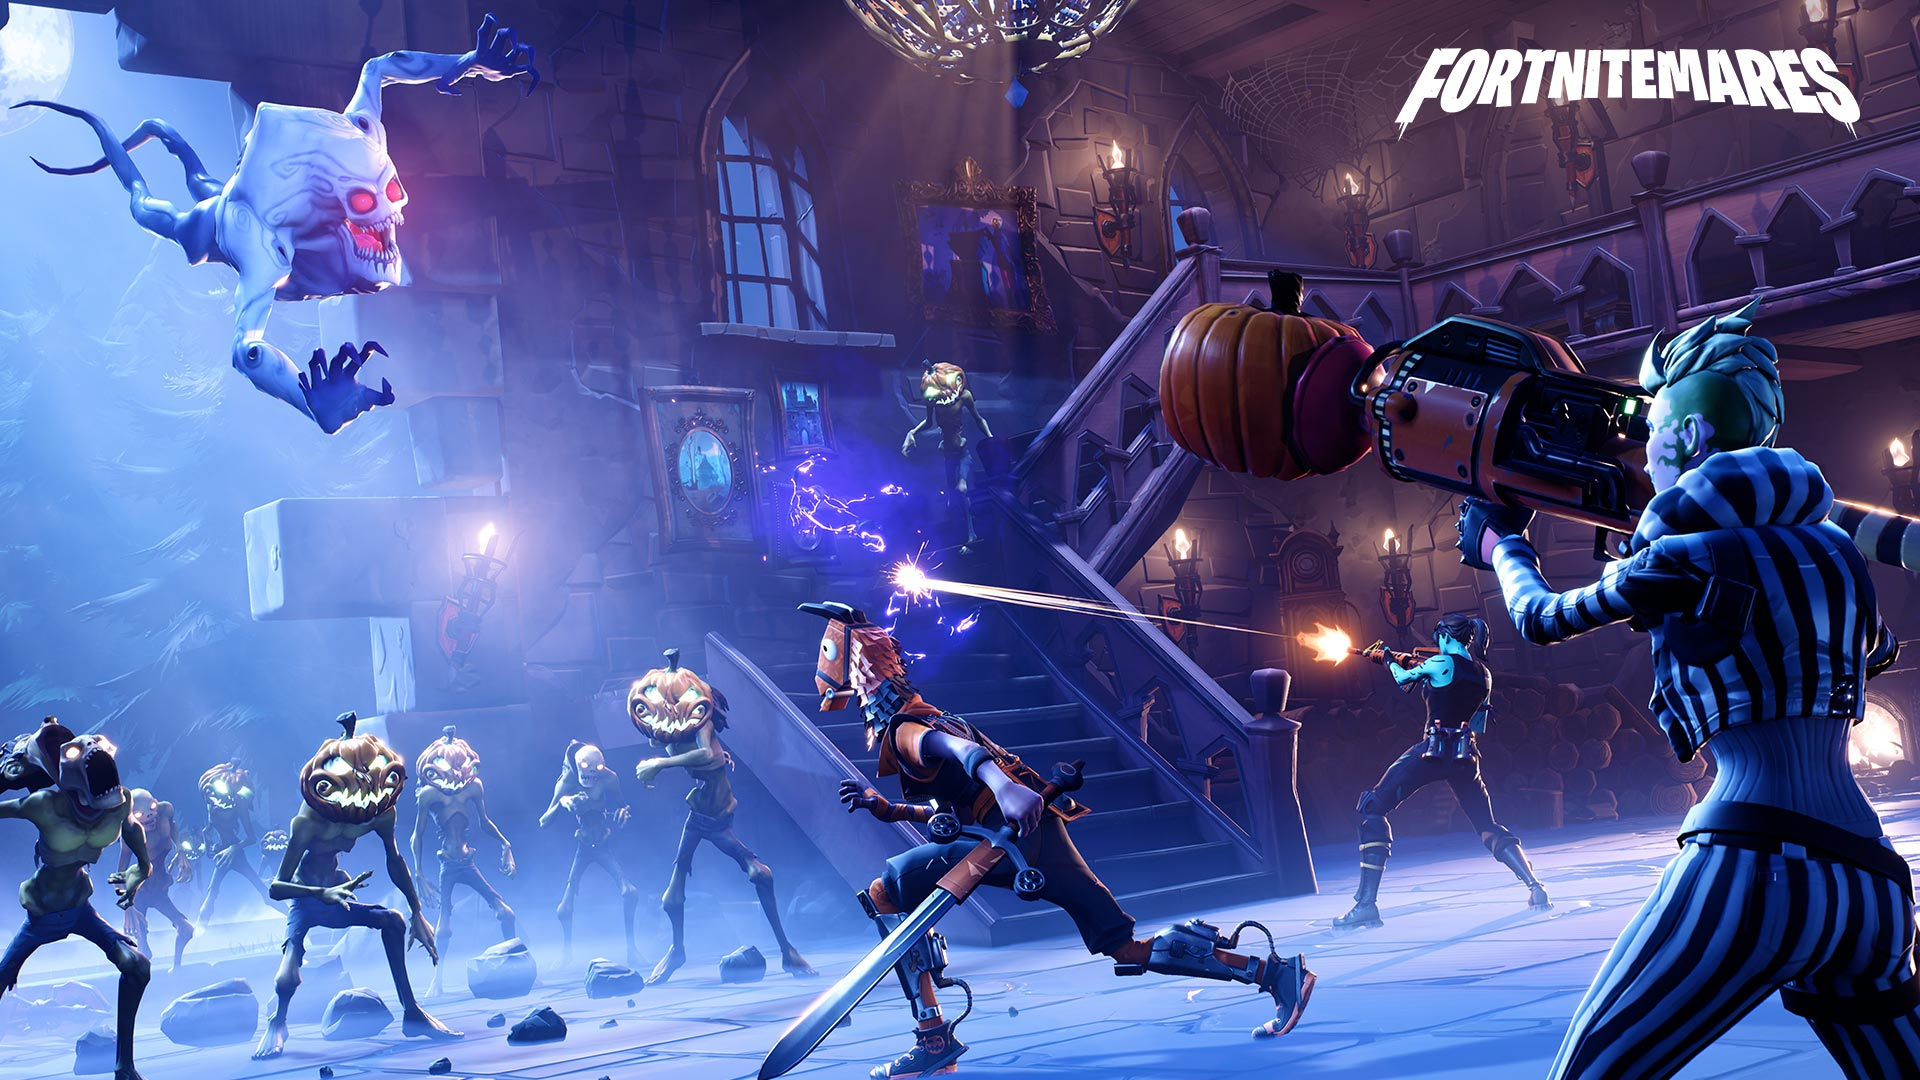 Fortnitemares Part 2